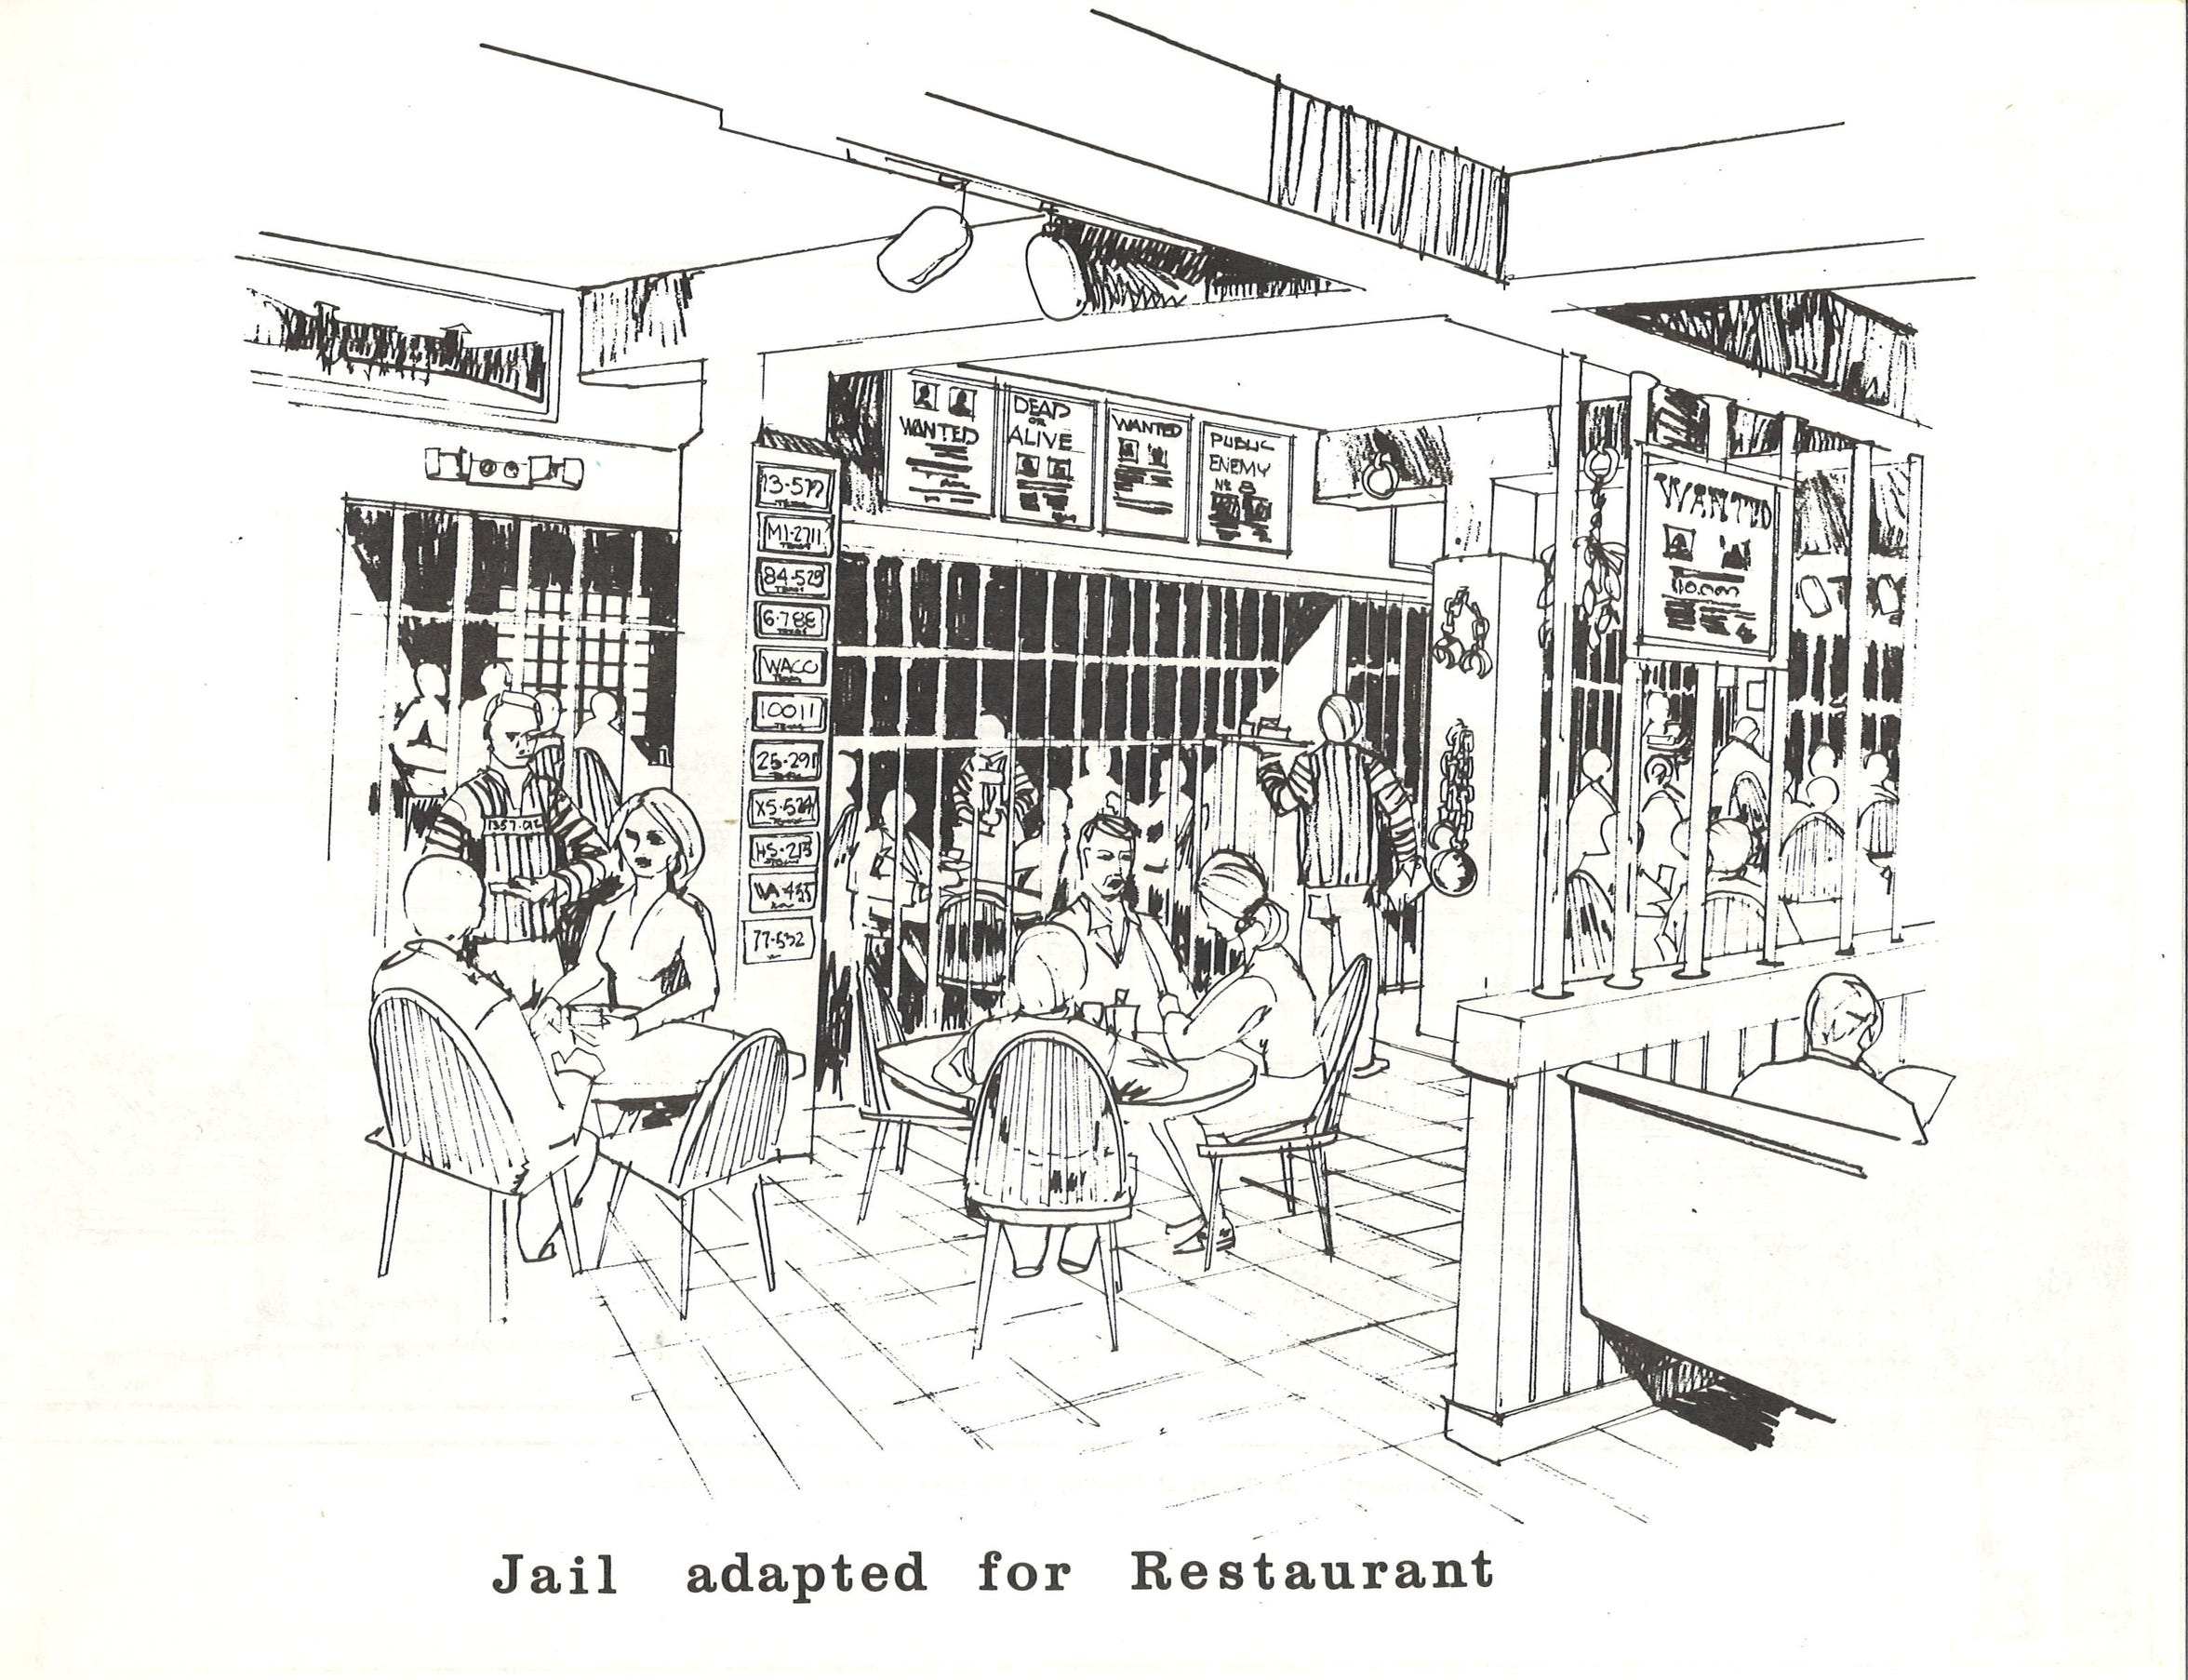 """This was the plan for the old jail area in the 1914 Nueces County Courthouse in a 1980 proposal funded by Charles Bennett. The restaurant would have had a jail theme. Note the manacles and """"Wanted"""" posters on the wall."""